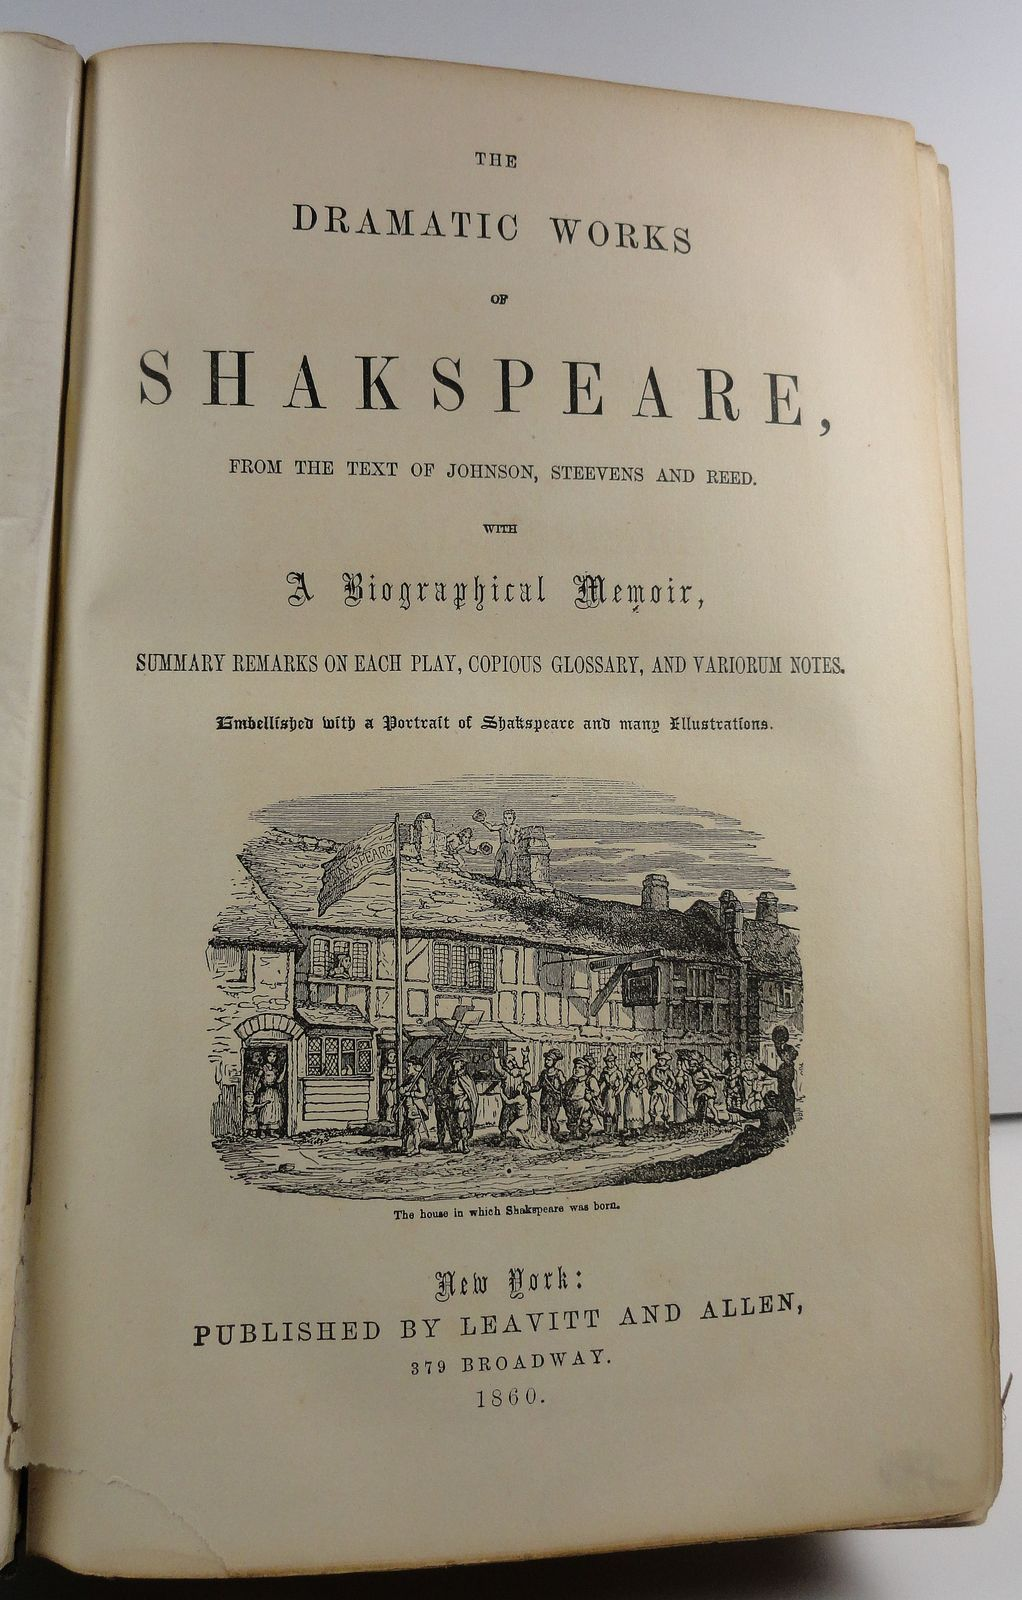 Dramatic Works of Shakspeare Johnson Steevens and Reed 1860